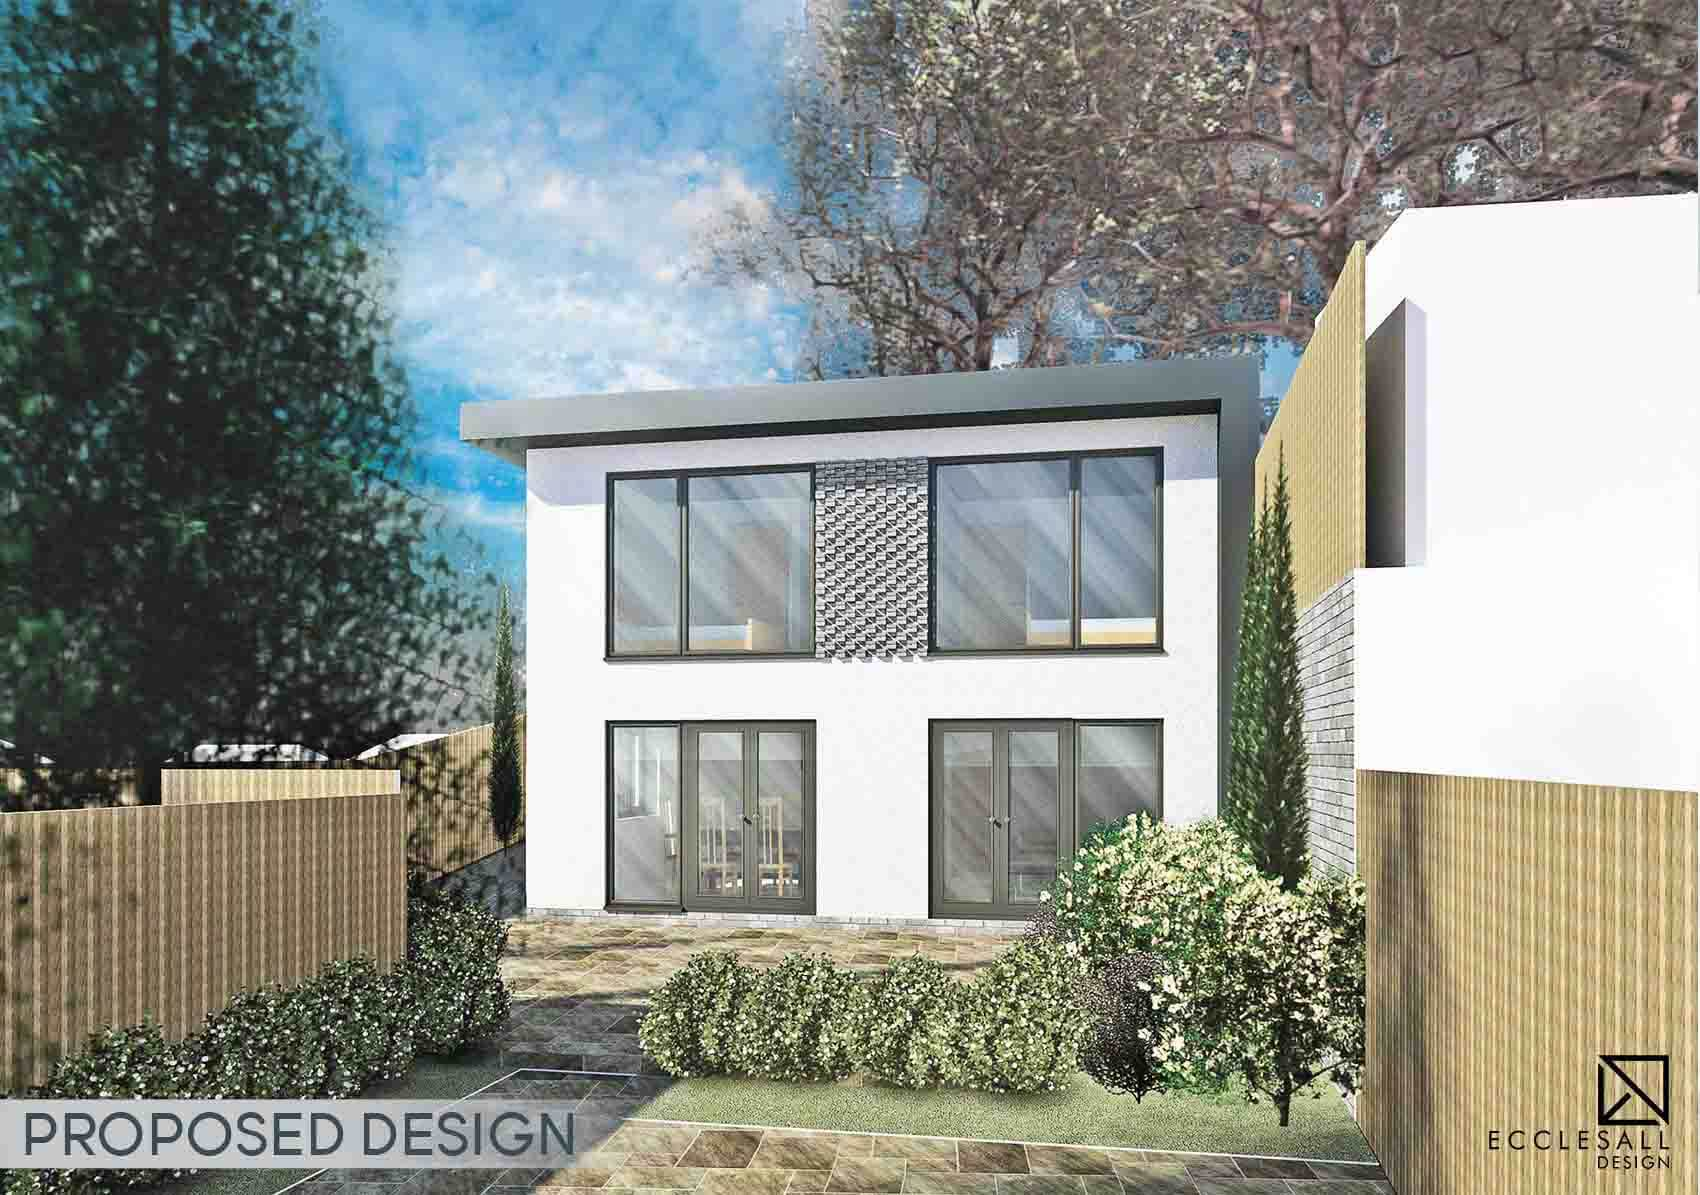 Why do people pay more for Ecclesall Design's unrivalled 3D full colour computer modelling drawings?